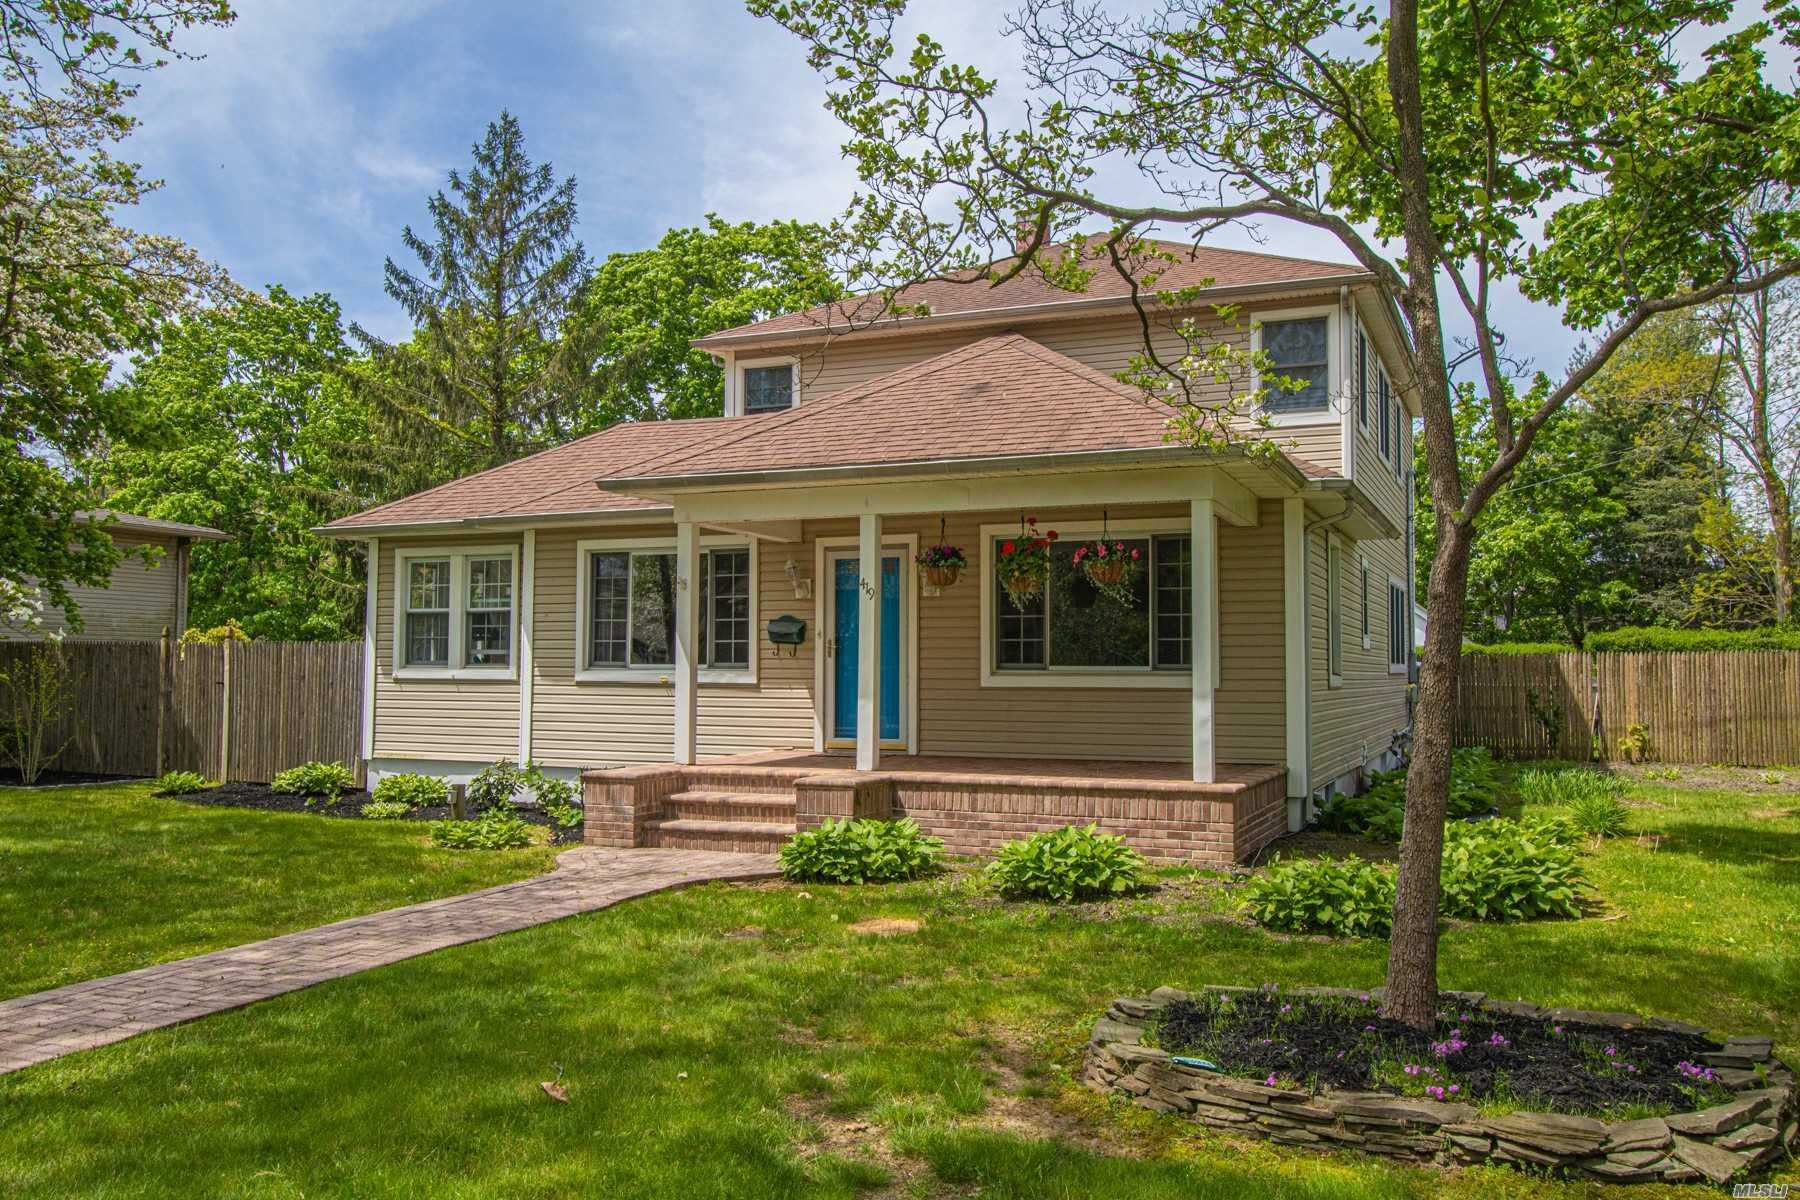 419 N Windsor Ave, Brightwaters, NY 11718 - MLS#: 3217784